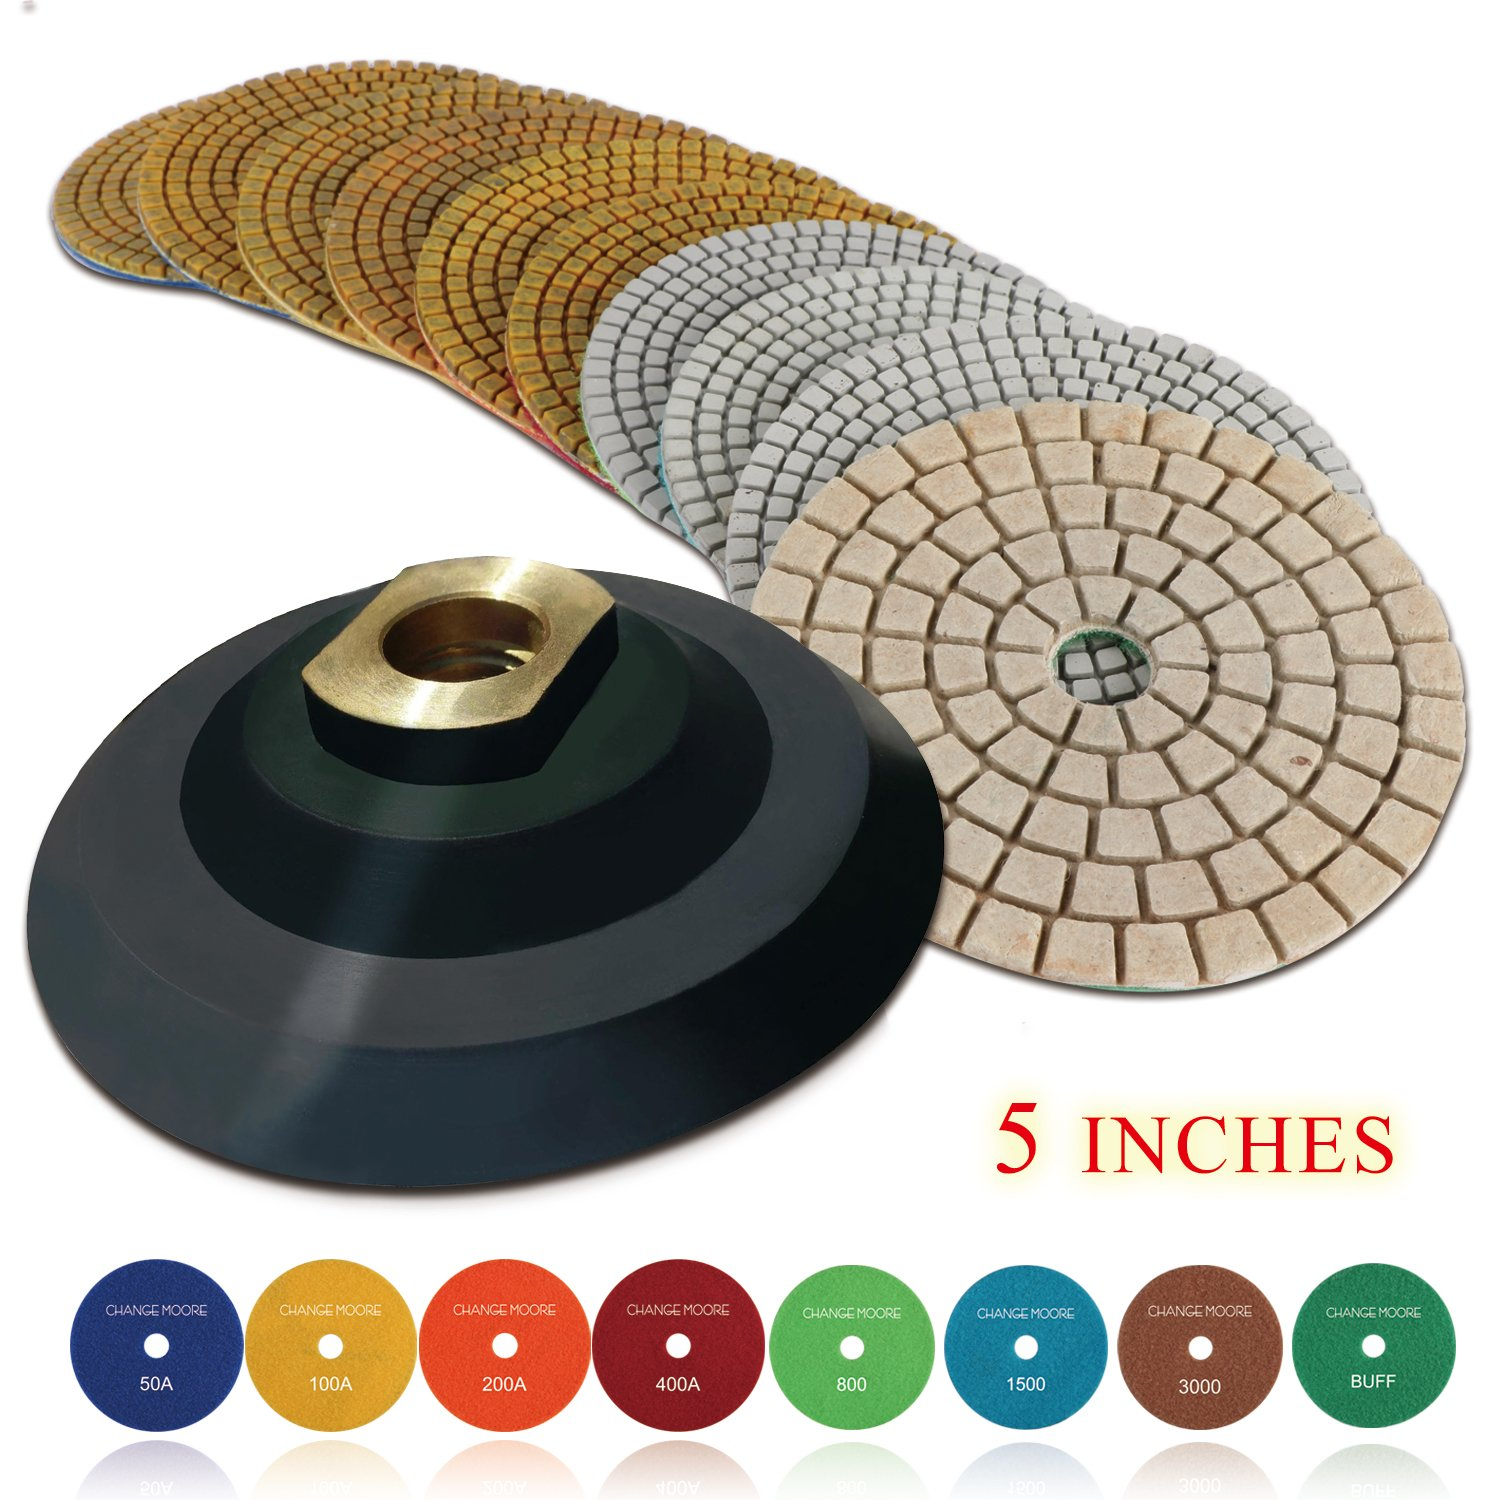 CHANGE MOORE Wet Diamond Polishing Pads Set 5 Inch for Marble Granite Travertine Terrazzo Concrete Stones Quartz Countertop Floor, 10 PCS and 1 Rubber Backing Pad (5/8'' Arbor)